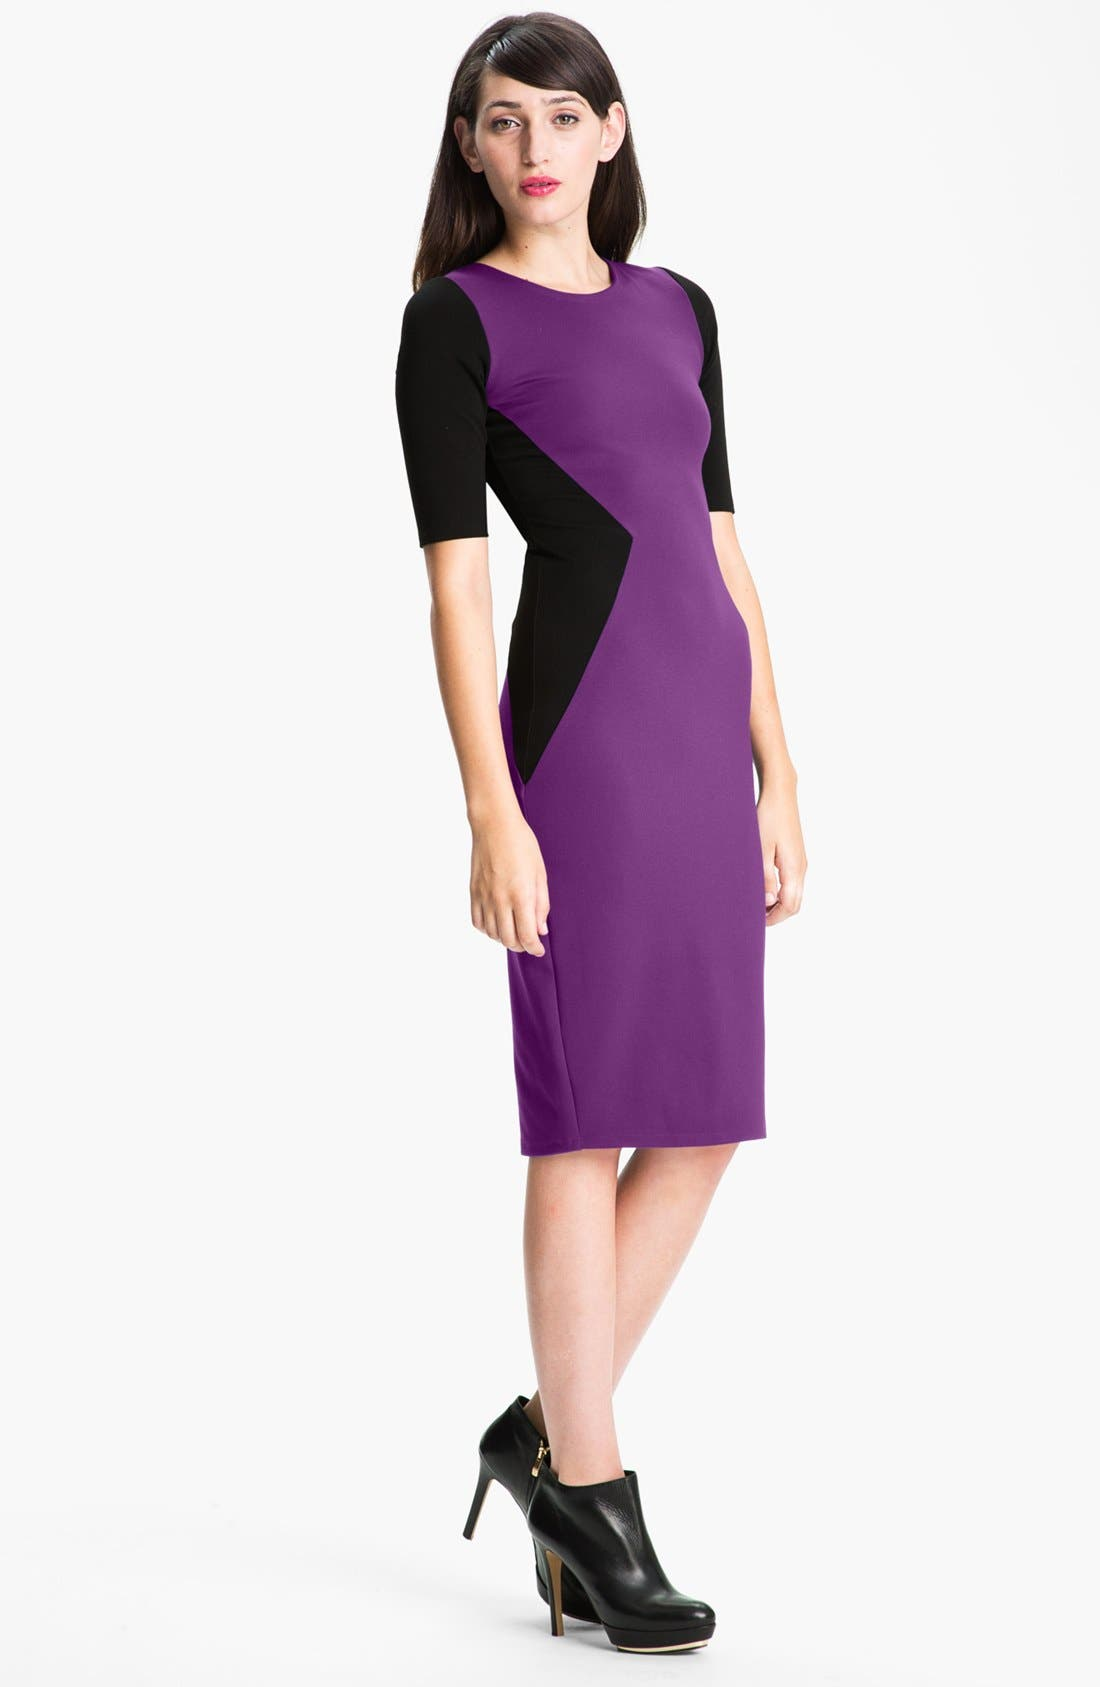 Alternate Image 1 Selected - Felicity & Coco Contrast Panel Sheath Dress (Nordstrom Exclusive)